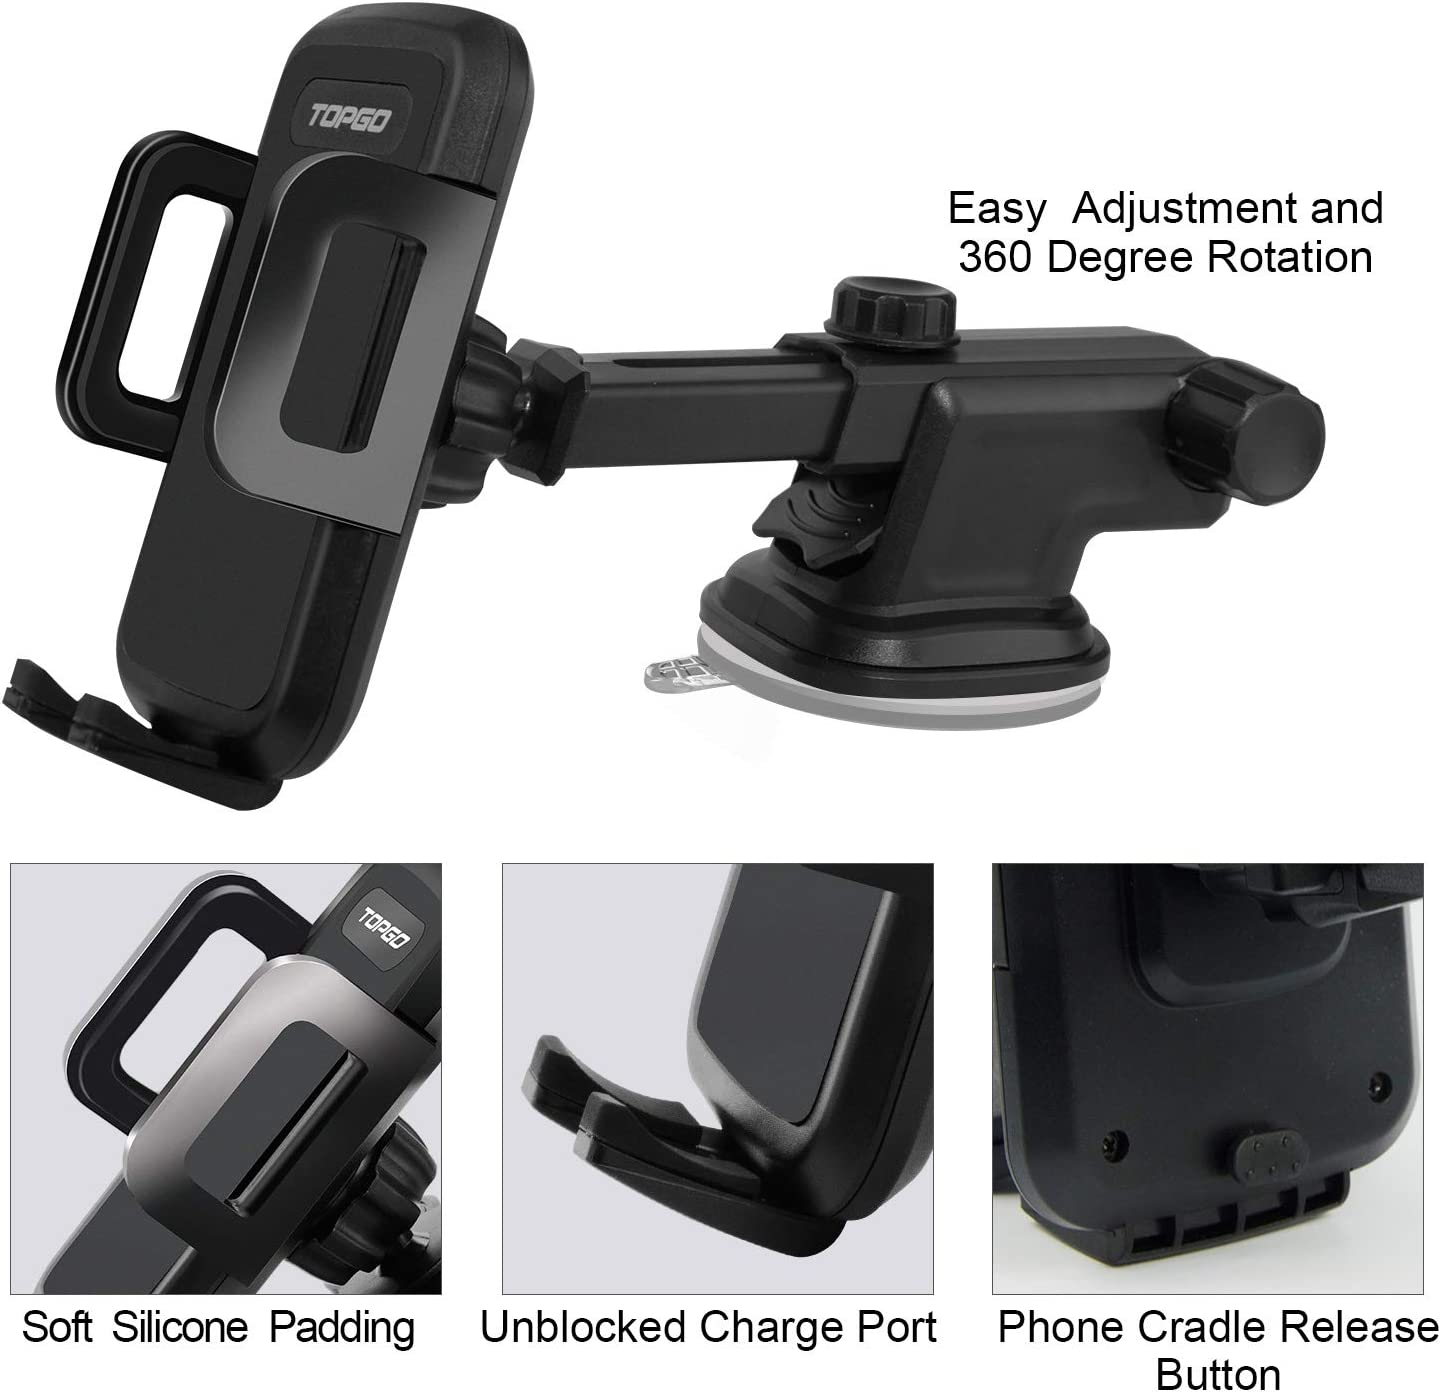 Car-Phone-Mount-Upgraded-Cell Phone Holder for Windshield Dashboard with Adjustable Long Arm Washable Strong Suction Cup Sticky Gel Pad for iPhone 11 Pro//XR//XS Max//6s//Samsung S10+//Note 9//S8 Plus